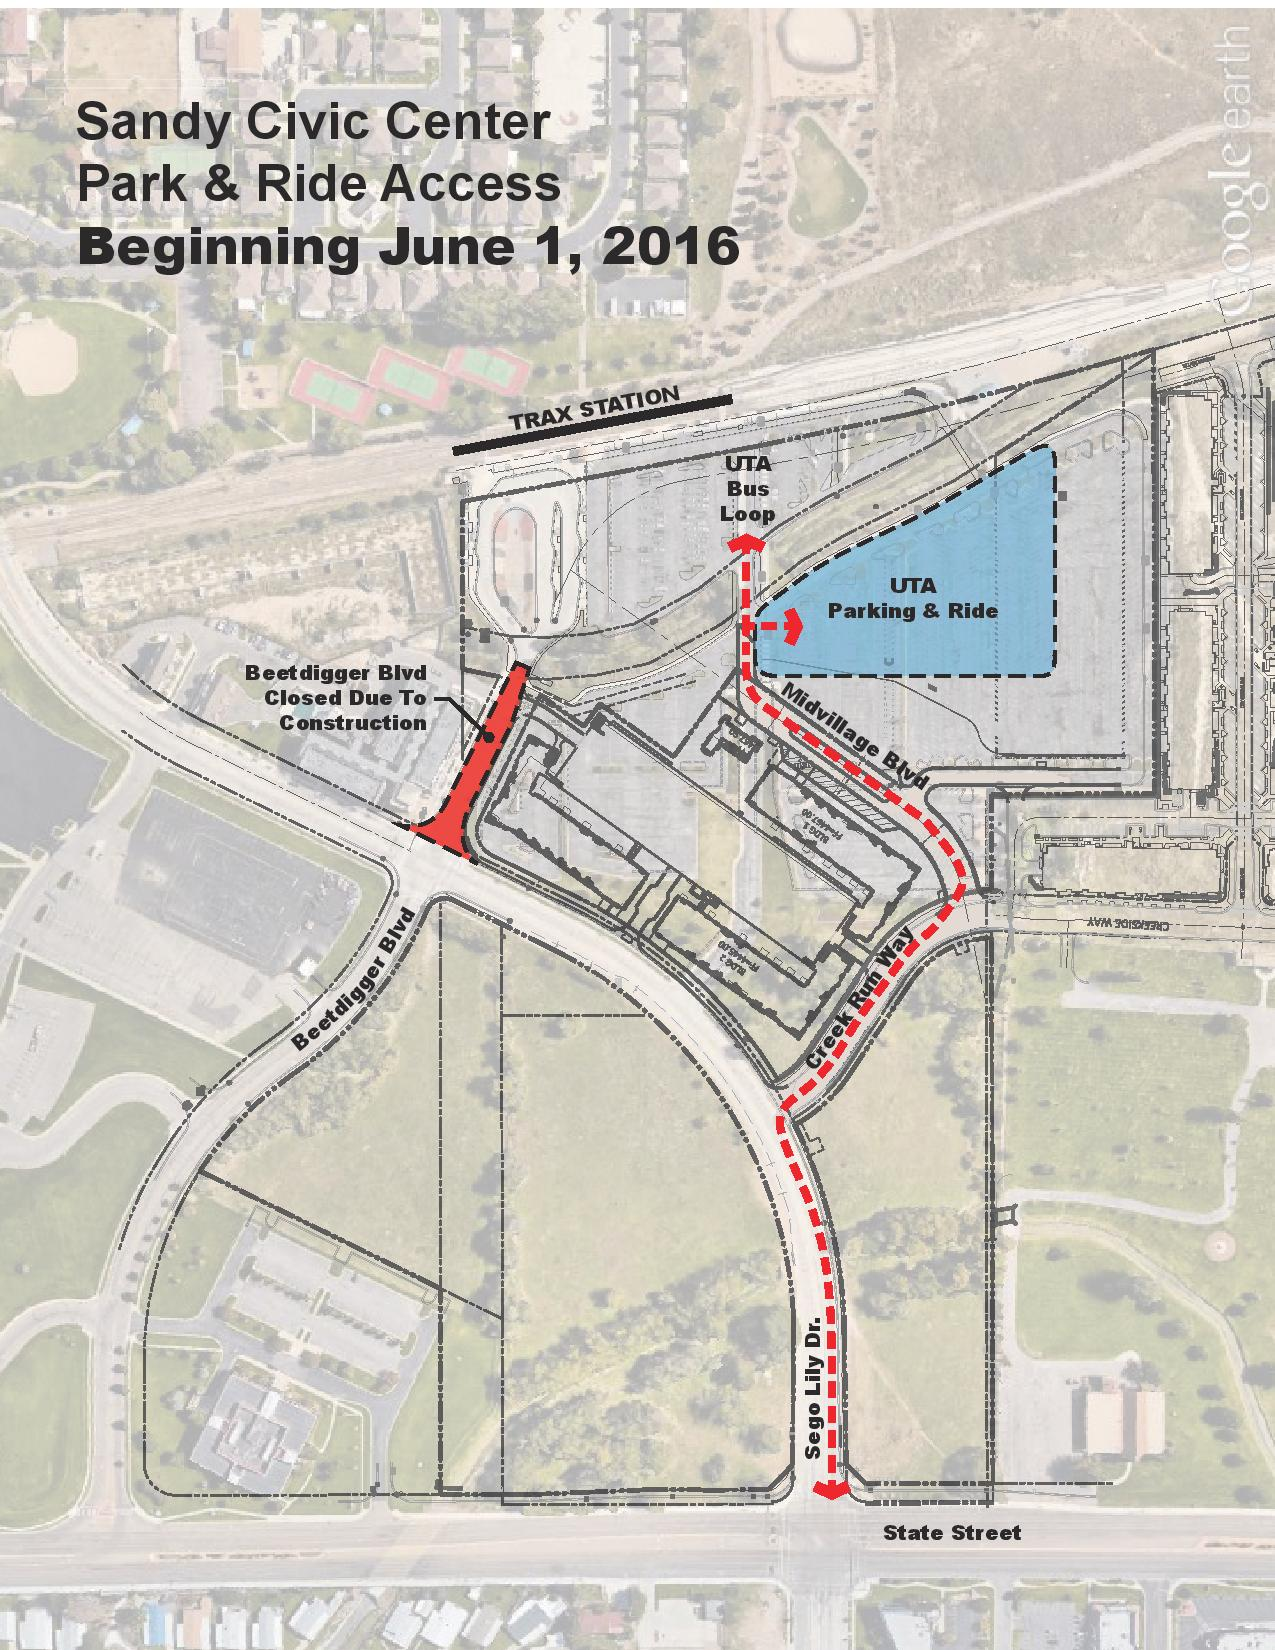 Riders who use the Park   Ride lot at the Sandy Civic TRAX Station should  note that the parking configuration will change starting June 1. Parking Changes at Sandy Civic Center TRAX Station